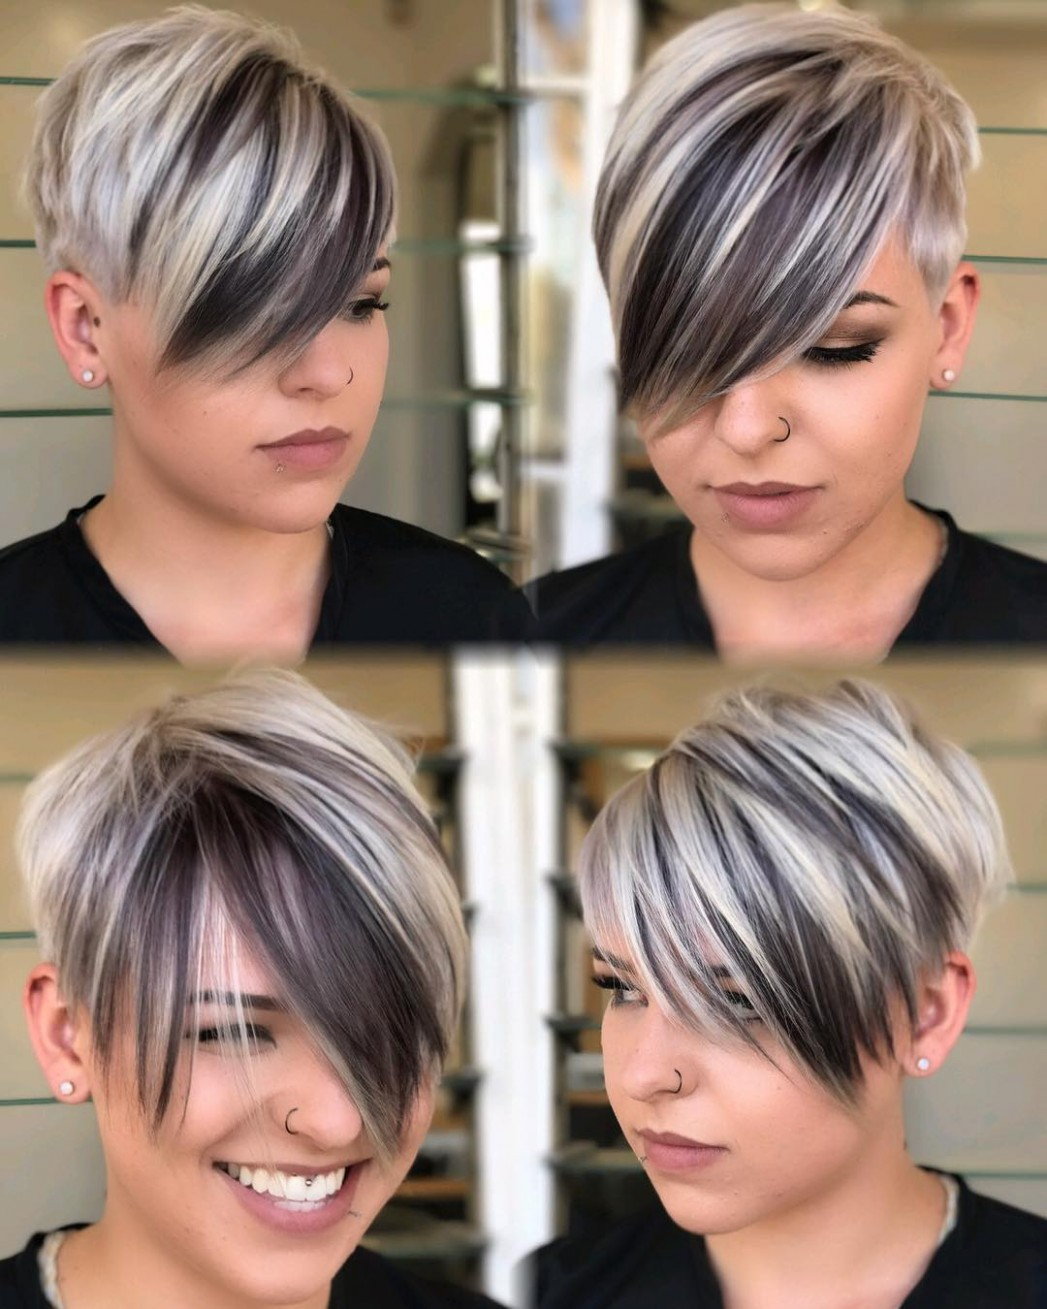 10 Short Hairstyles For Round Faces With Slimming Effect Hadviser Pixie Cut For Round Chubby Face